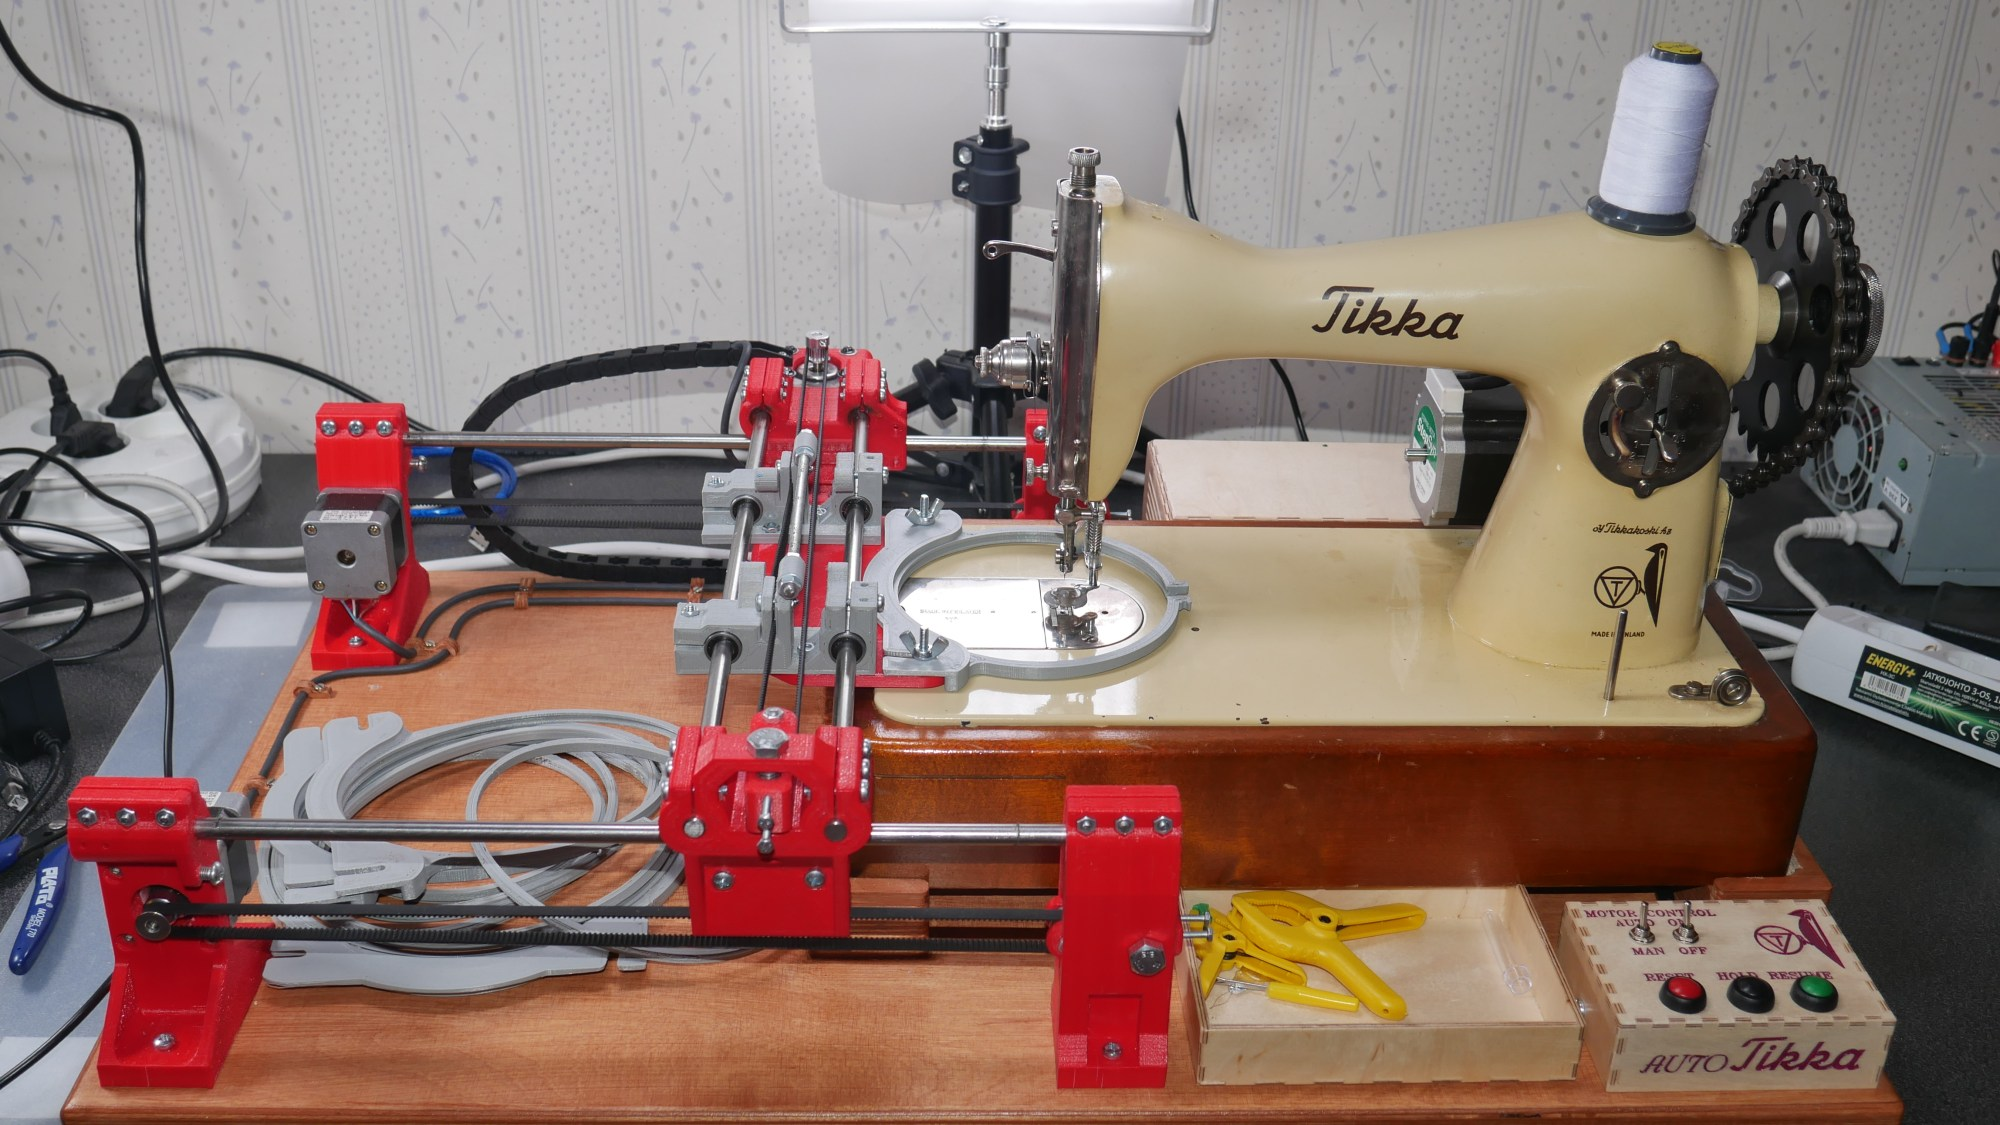 hight resolution of after all embroidery machine is nothing more than overgrown sewing machine